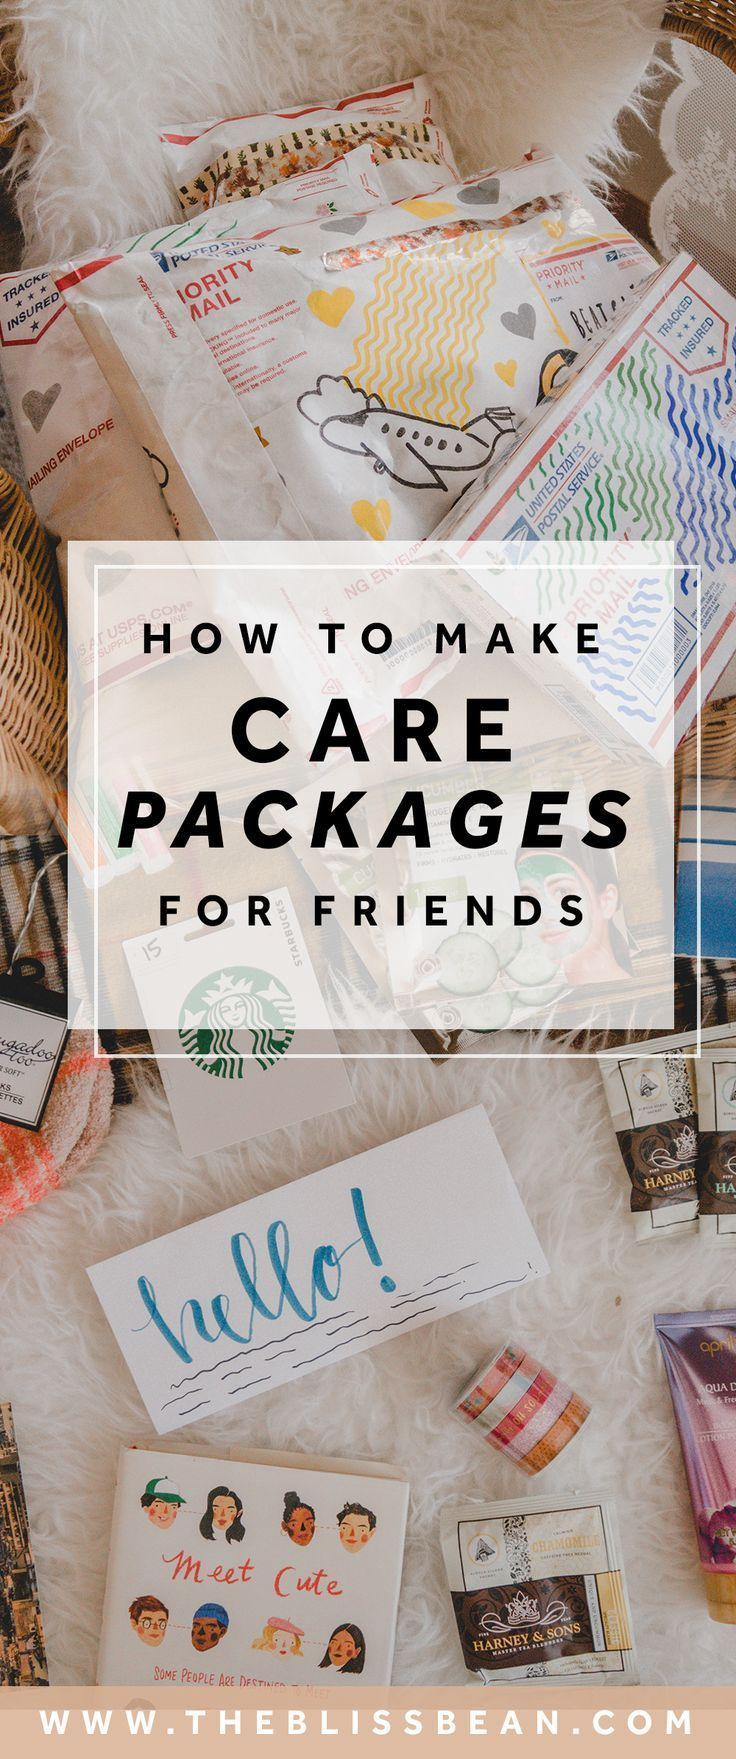 [VIDEO] How to Make Care Packages for Your Friends in 2020